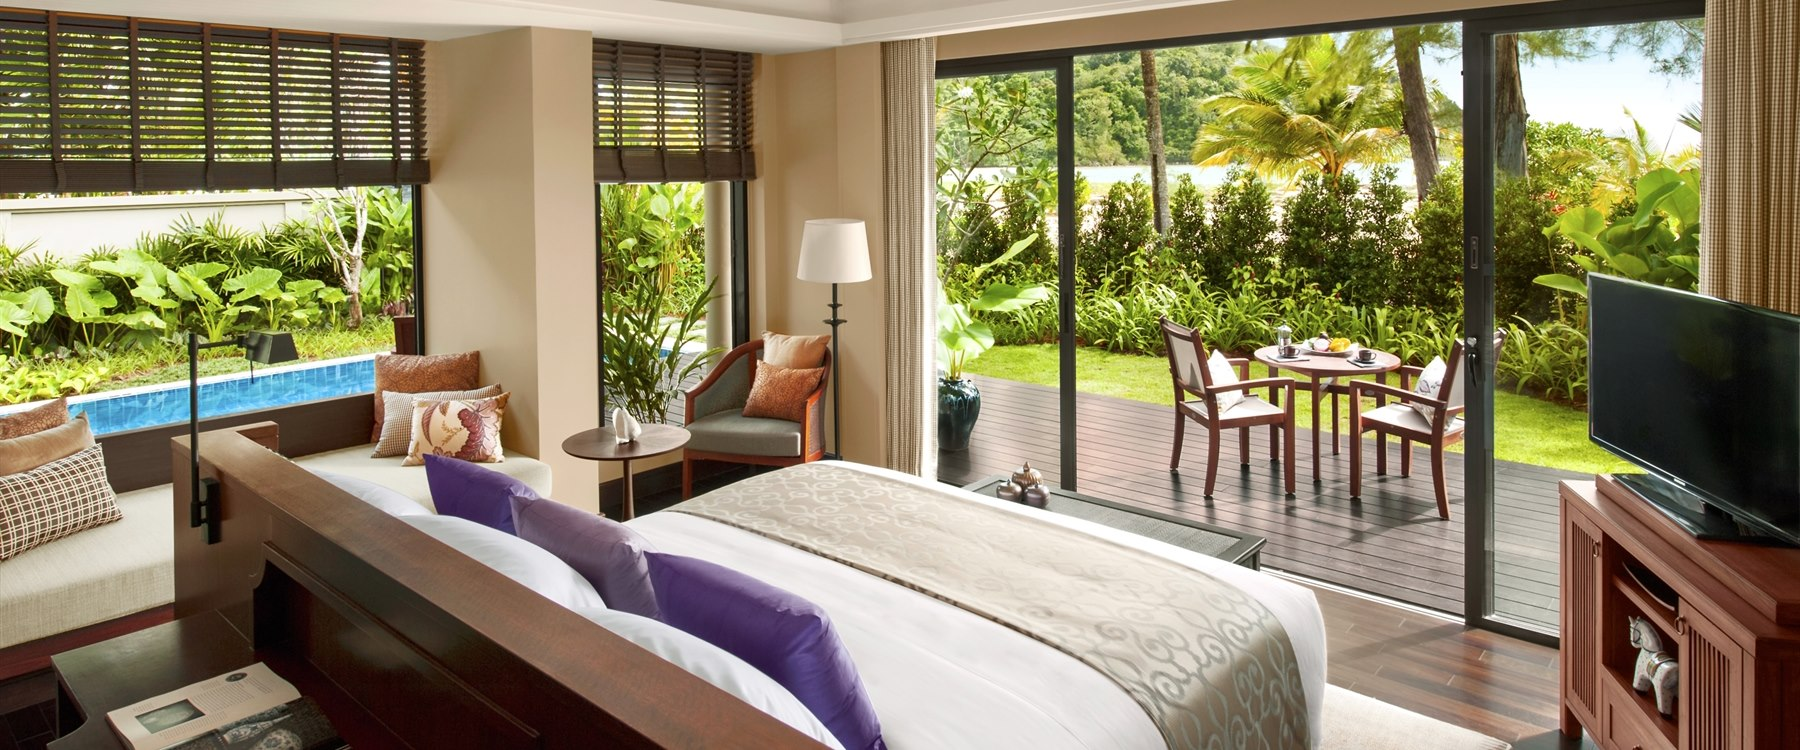 Beach Villa Master Bedroom at Anantara Layan Phuket Resort, Thailand